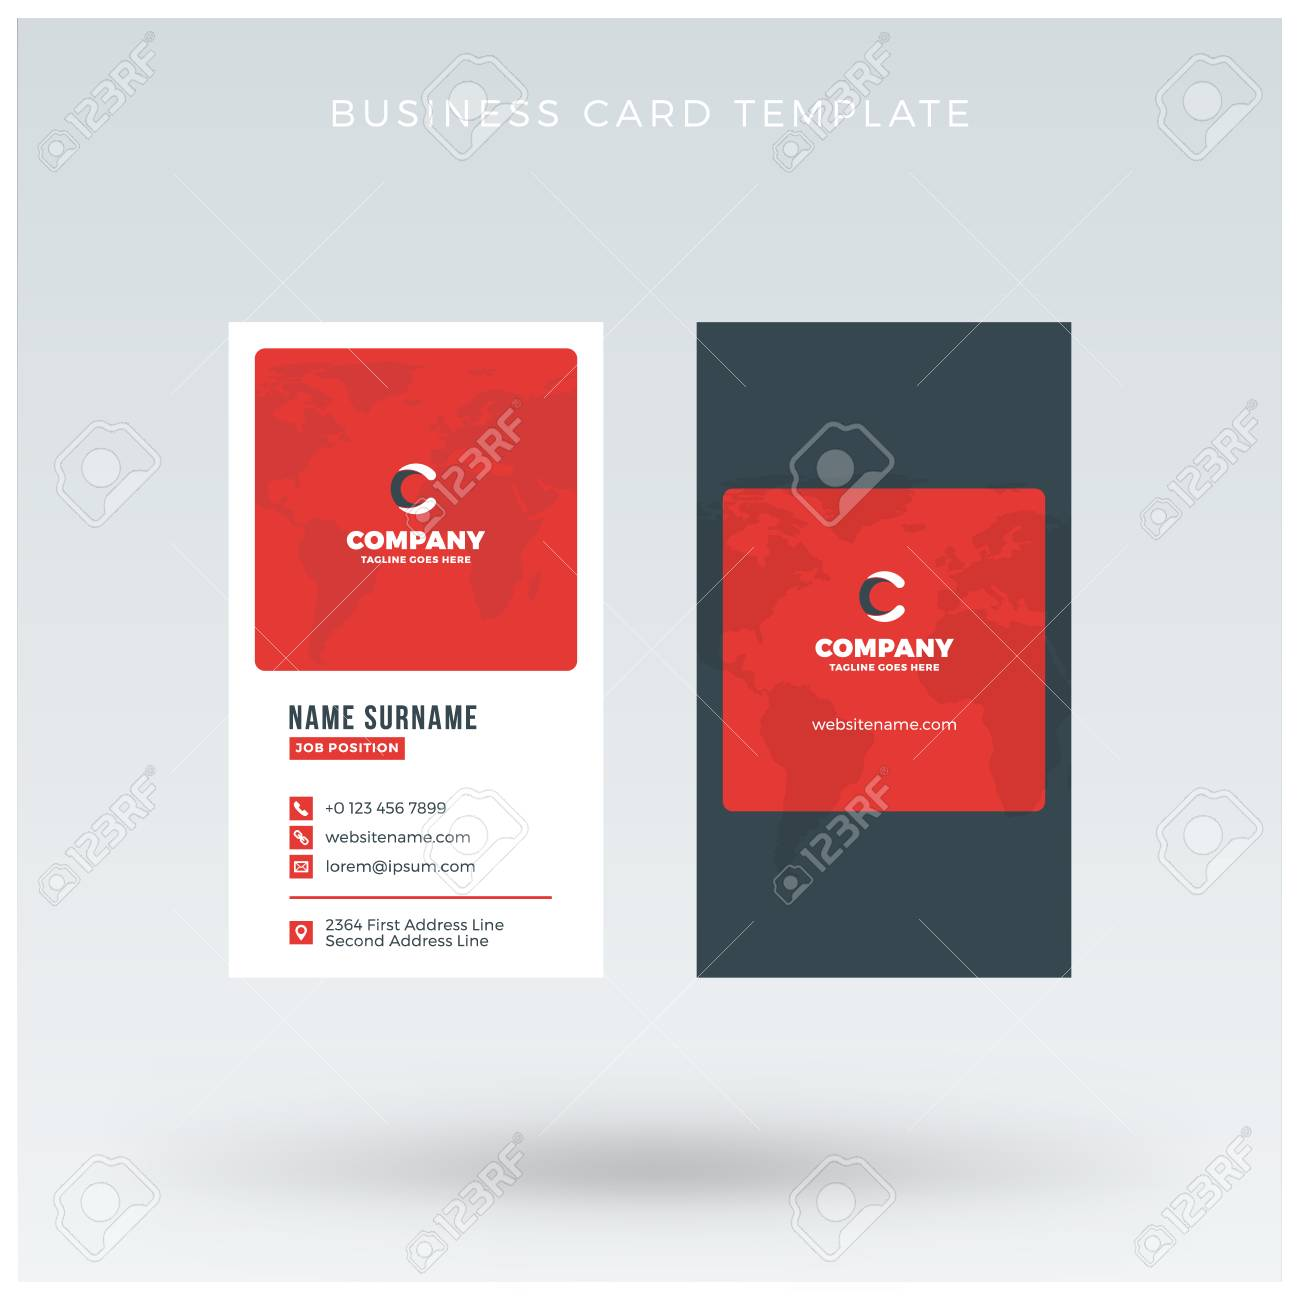 Modern creative vertical red business card template flat design modern creative vertical red business card template flat design vector illustration stationery design stock cheaphphosting Image collections